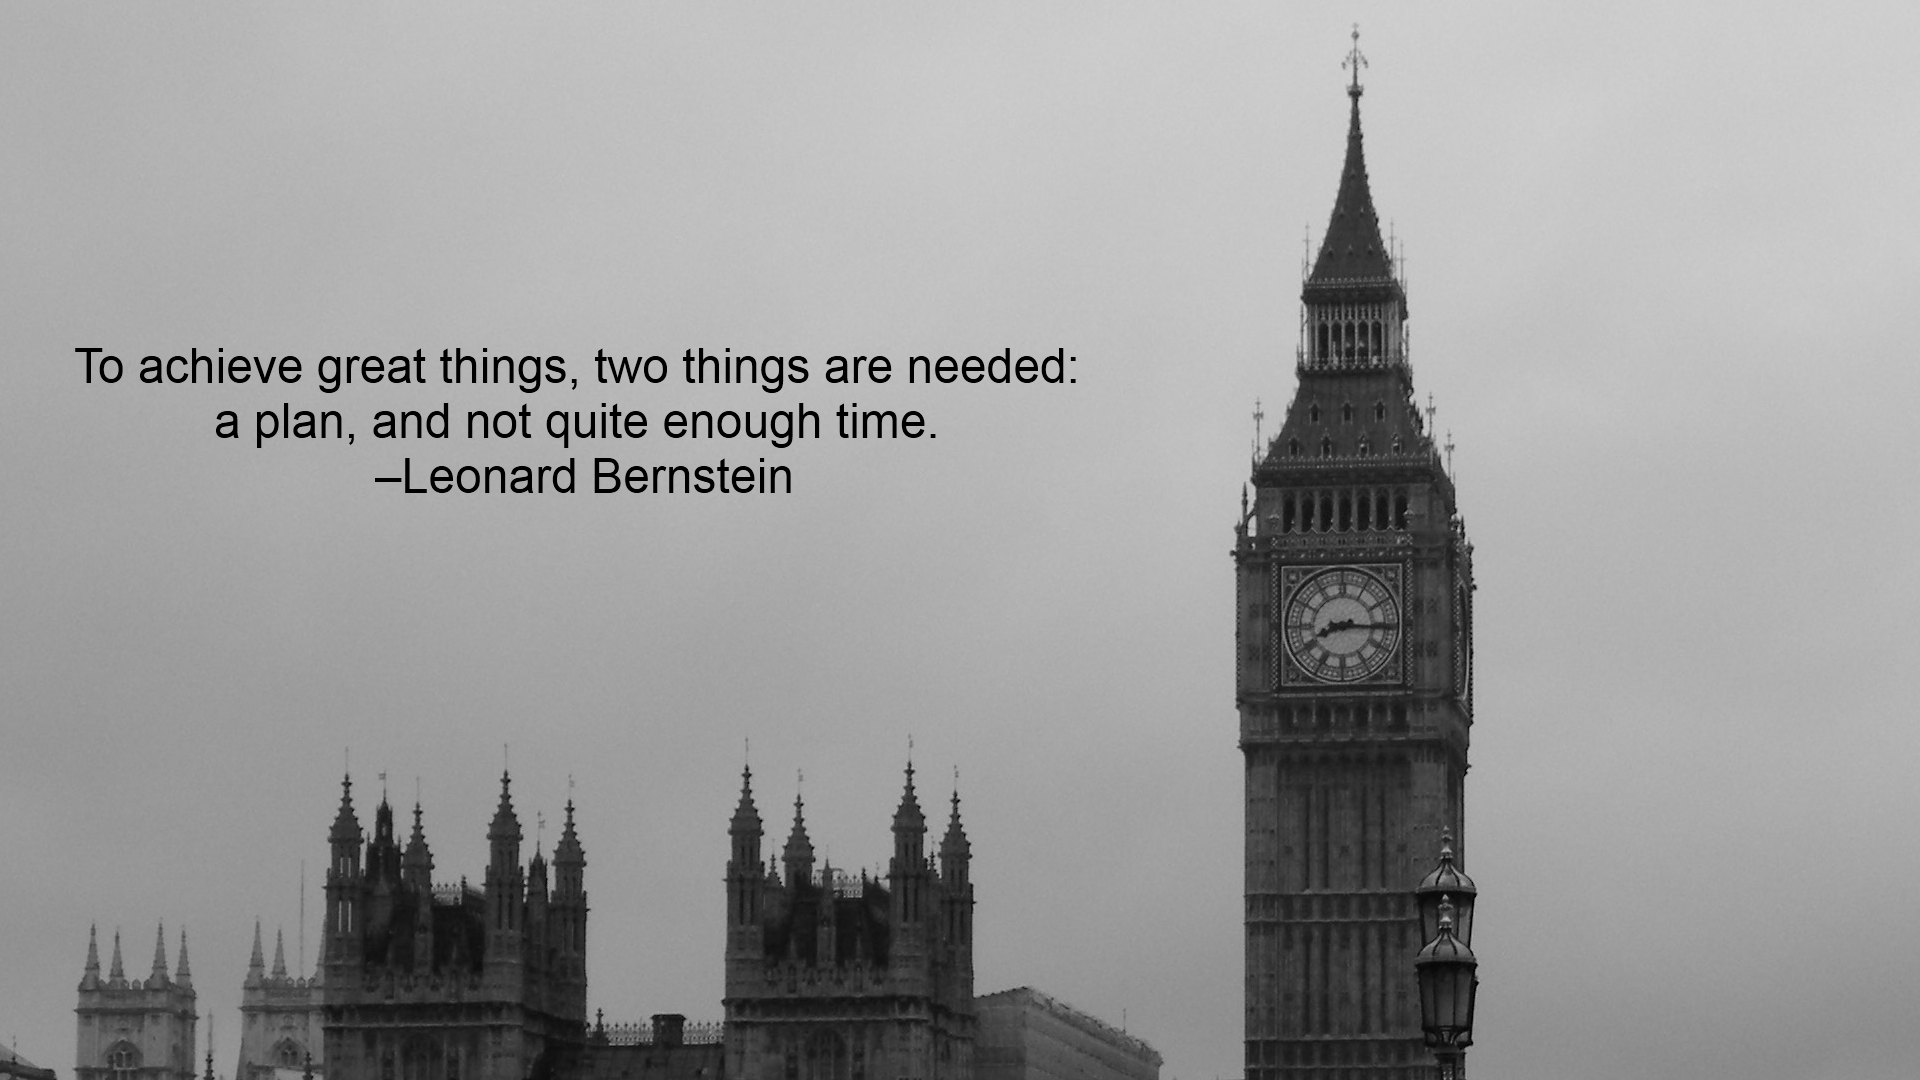 quotes-big-ben-HD-Wallpapers